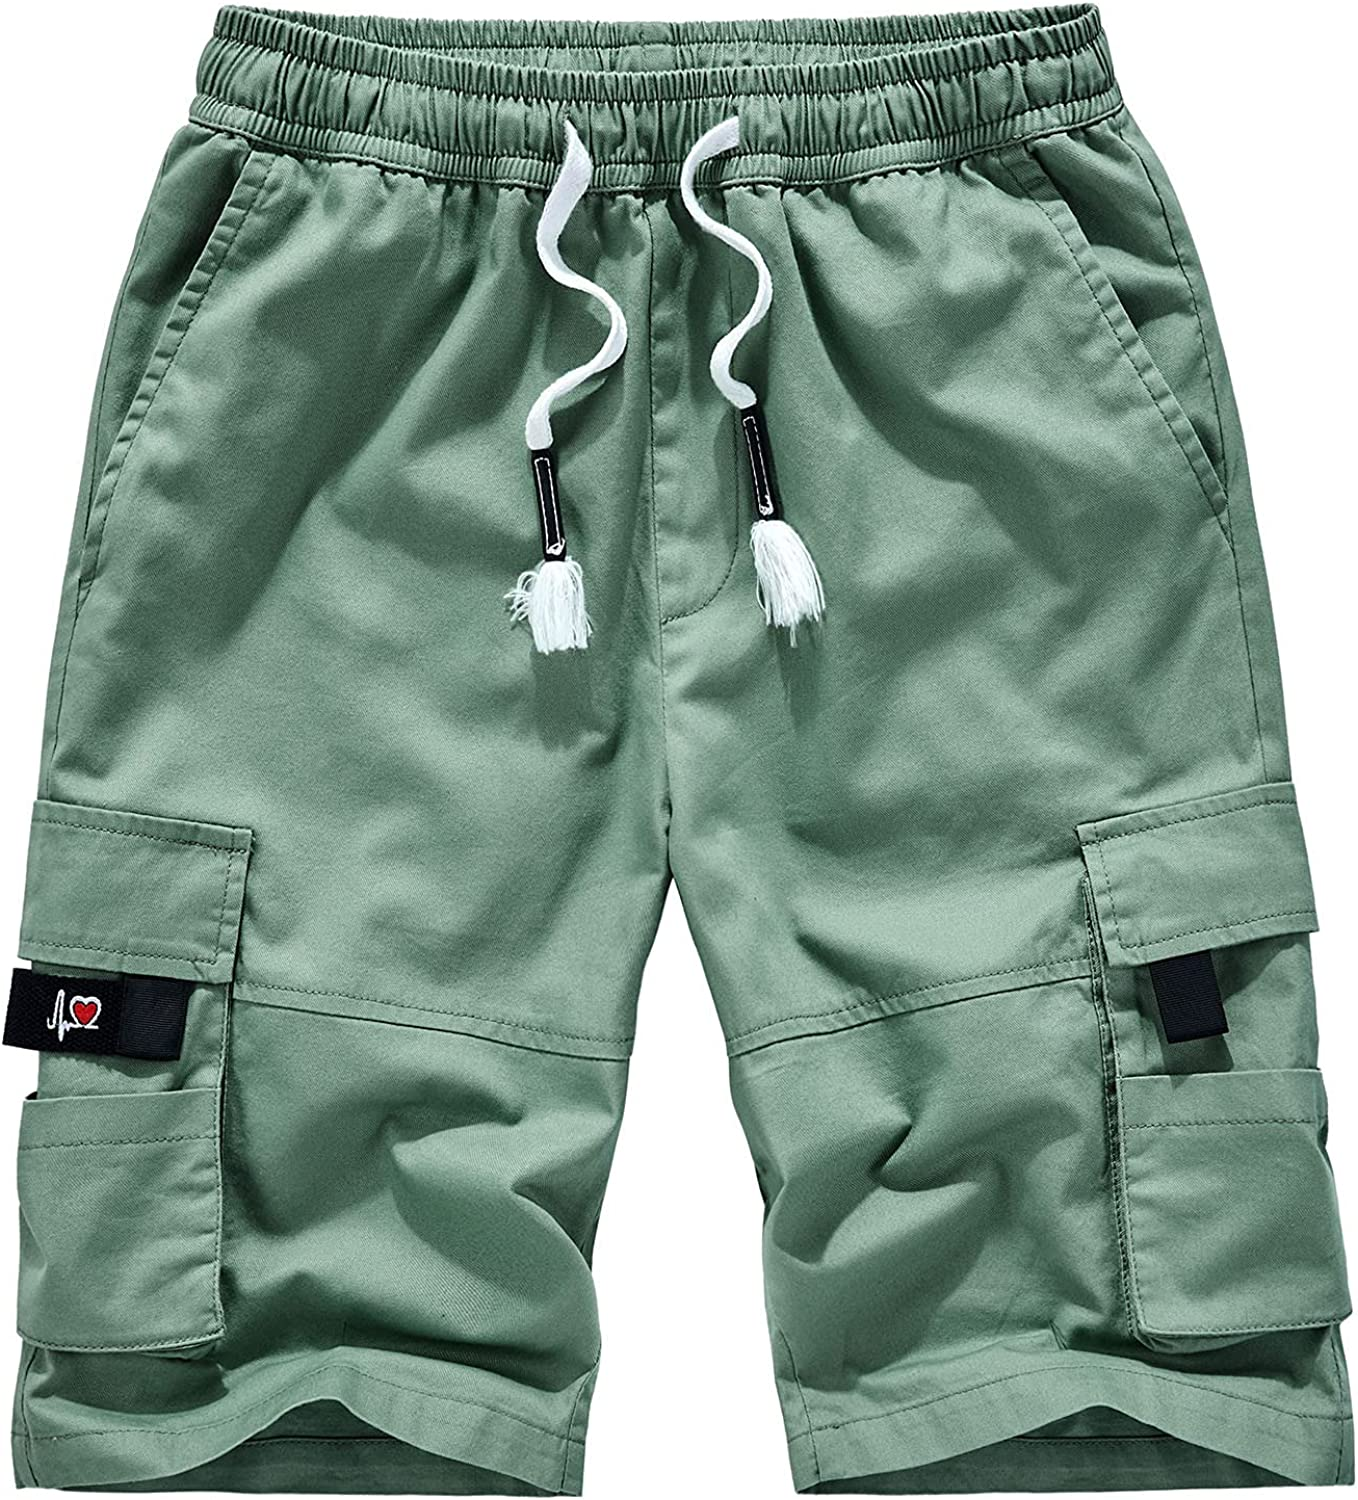 LEIYAN Mens Work Cargo Shorts Casual Drawstring Relaxed Fit Athletic Workout Carpenter Shorts Beach Hippie Shorts